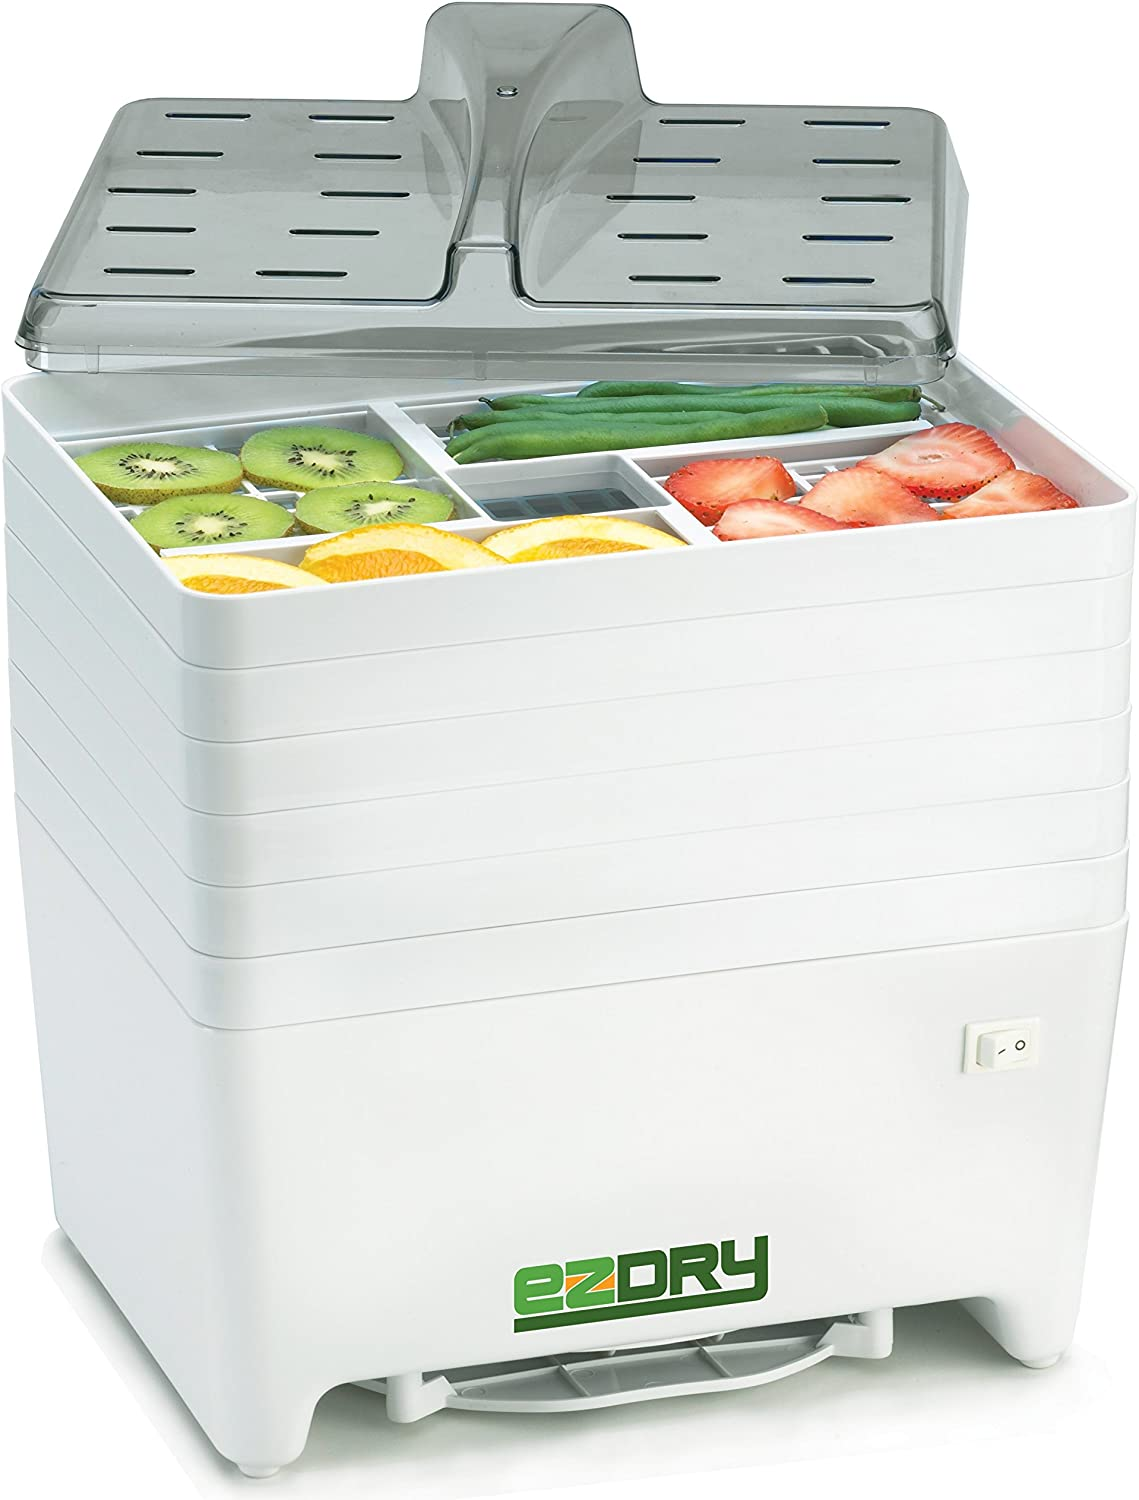 Excalibur EPD60W EZ Dry 6-Tray Stackable Electric Food Dehydrator Features a Constant Temperature of 120 to 165 Degree Fahrenheit BPA Free, 6-Tray, White